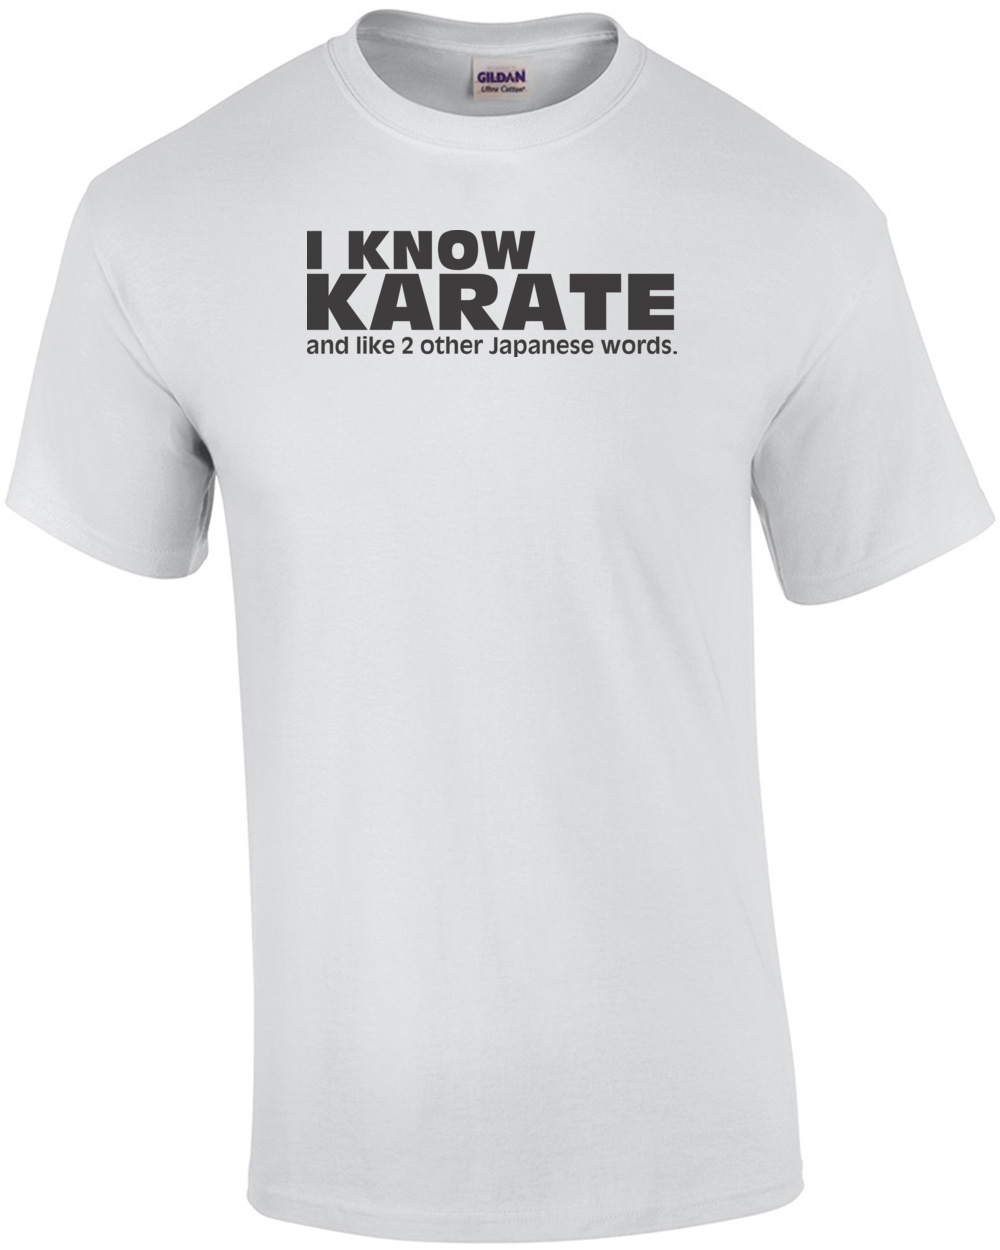 Perfect I Know Karate, And Like 2 Other Japanese Words T-shirt GK51